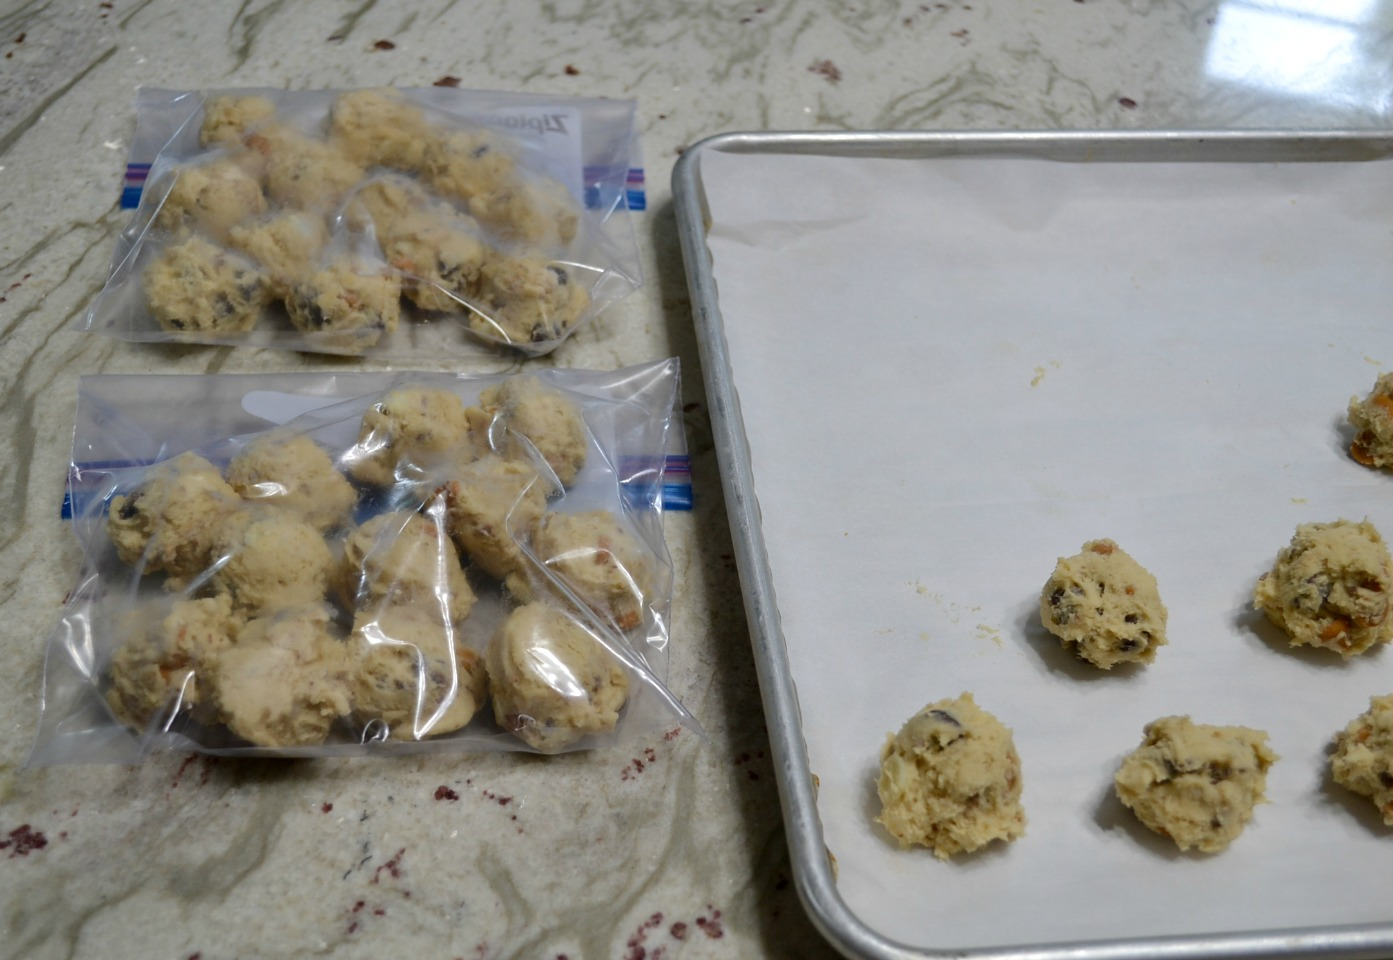 Preparing freezer cookie dough balls ahead of time allows you to bake fresh, homemade cookies in minutes with no mess